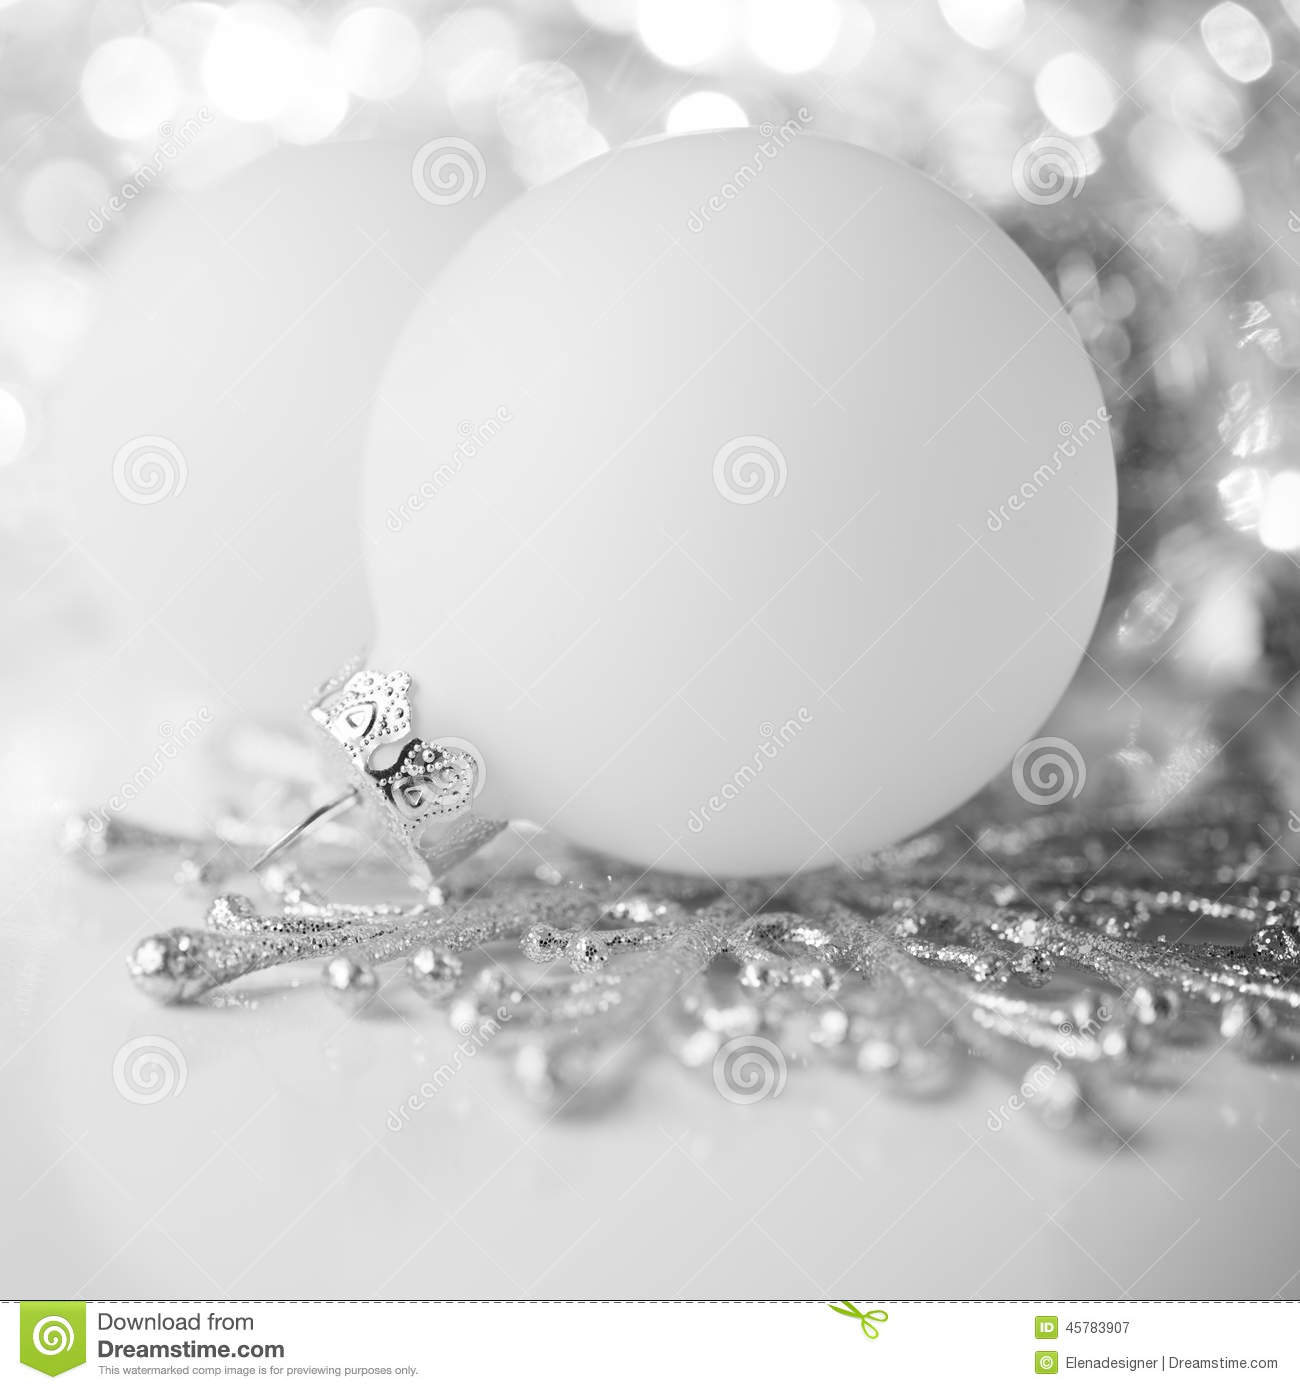 Silver and white christmas decoration on holiday background stock photo image 45783907 - Silver and white christmas ...